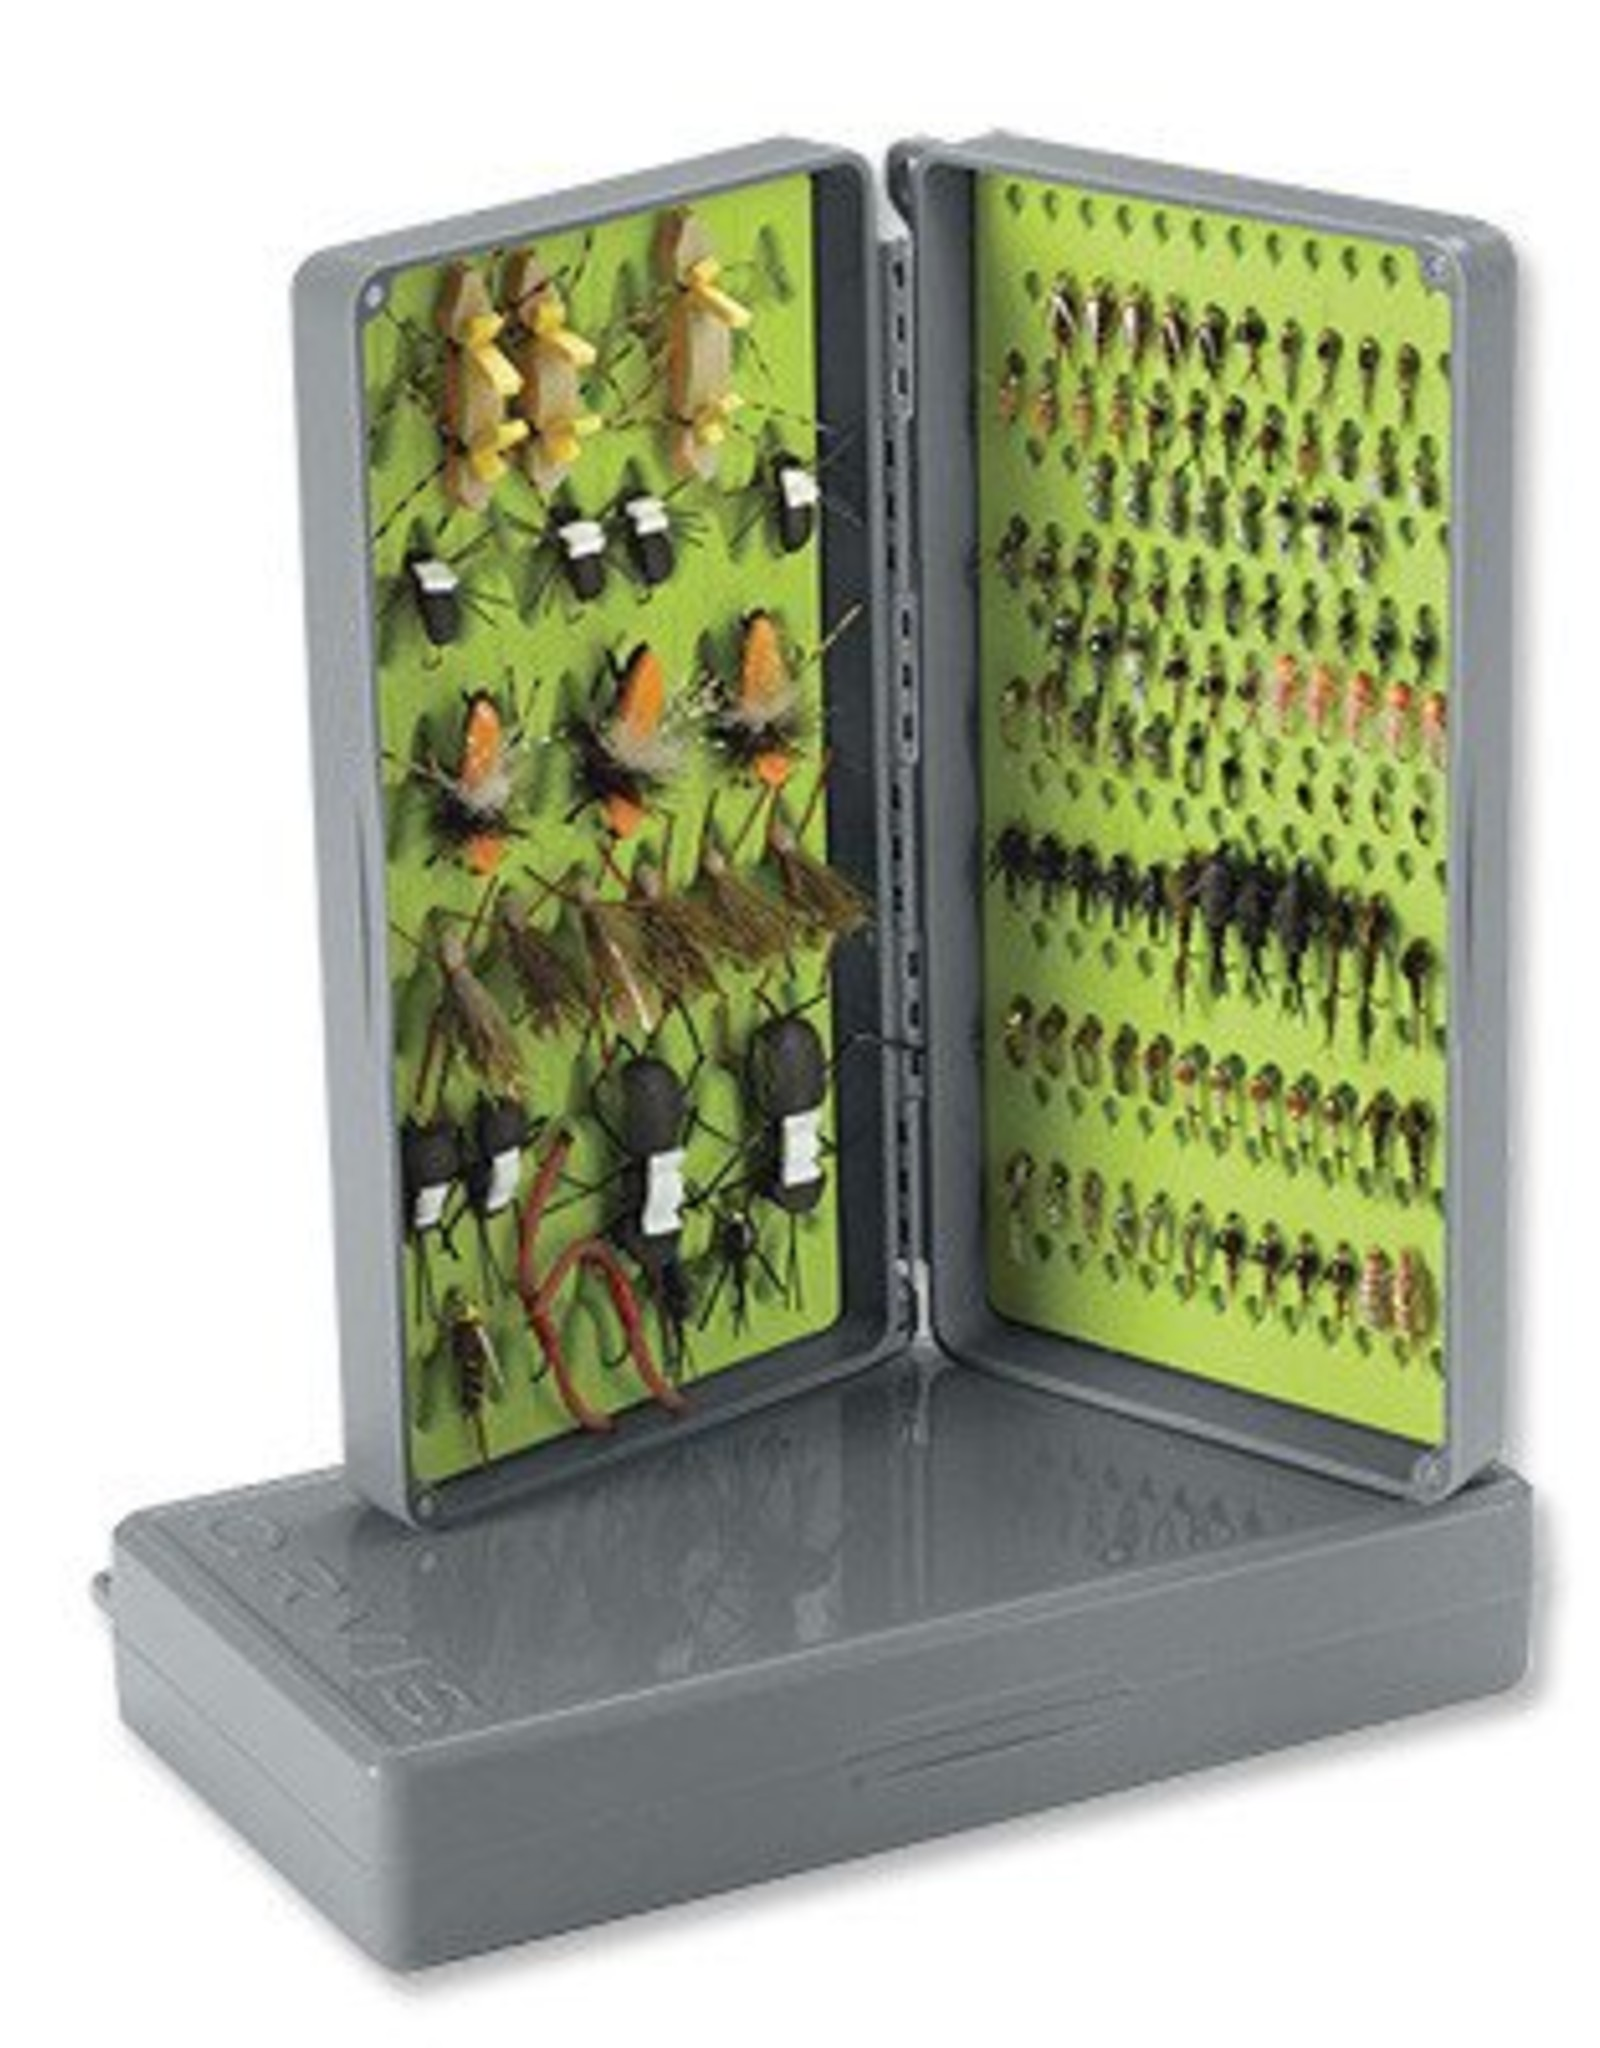 Orvis Orvis Tacky Collab Fly Box